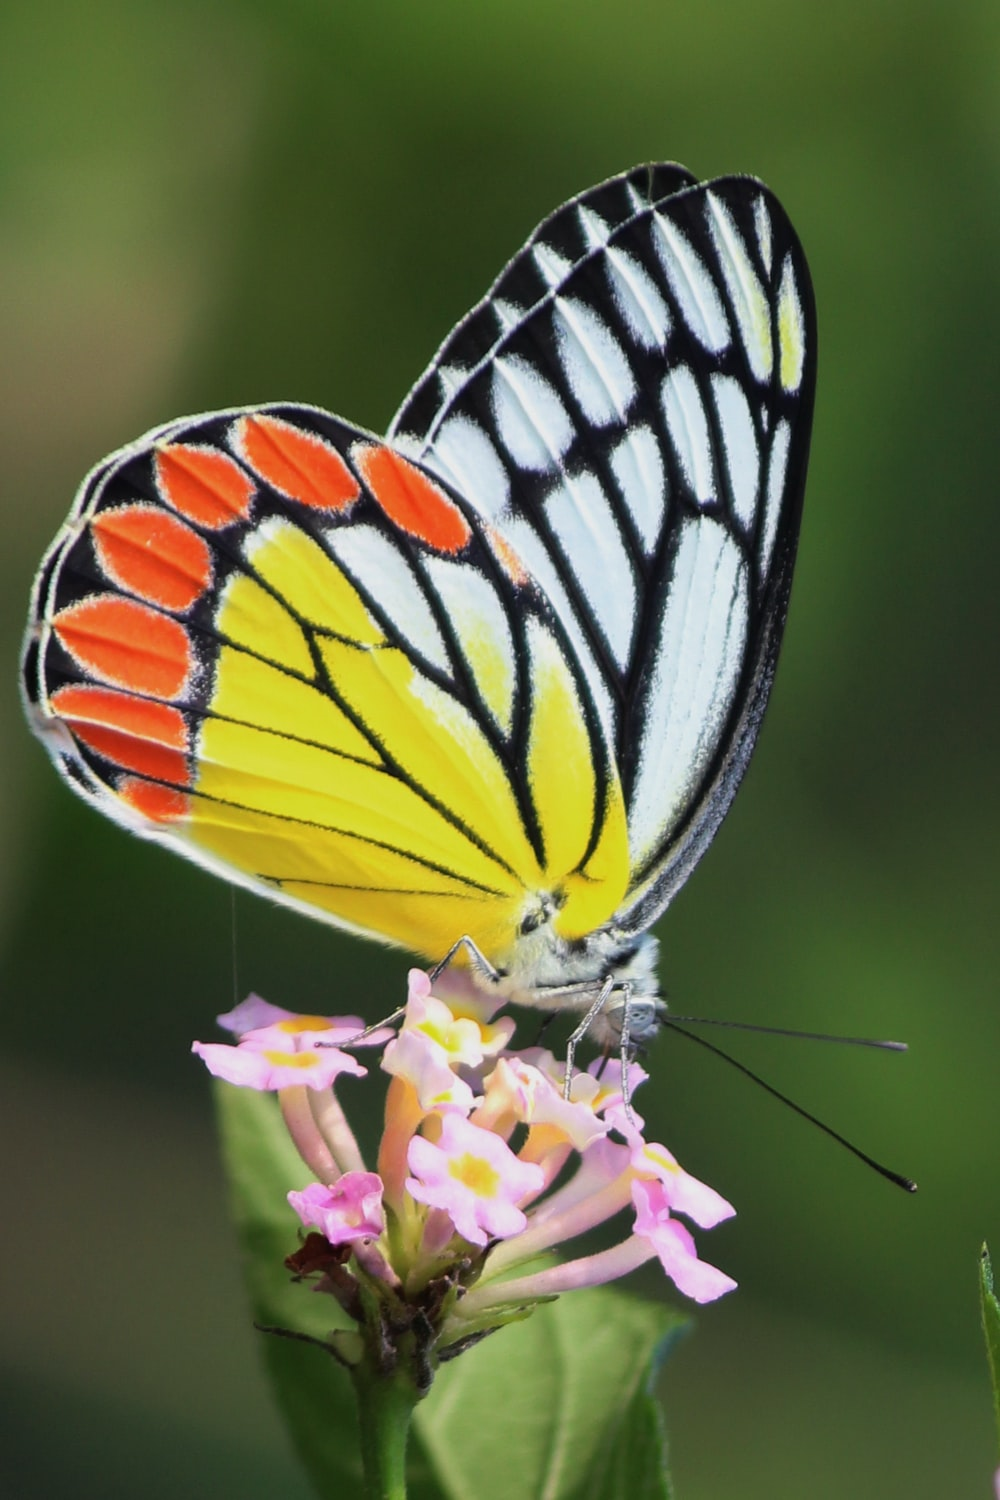 tiger swallowtail butterfly perched on purple flower in close up photography during daytime